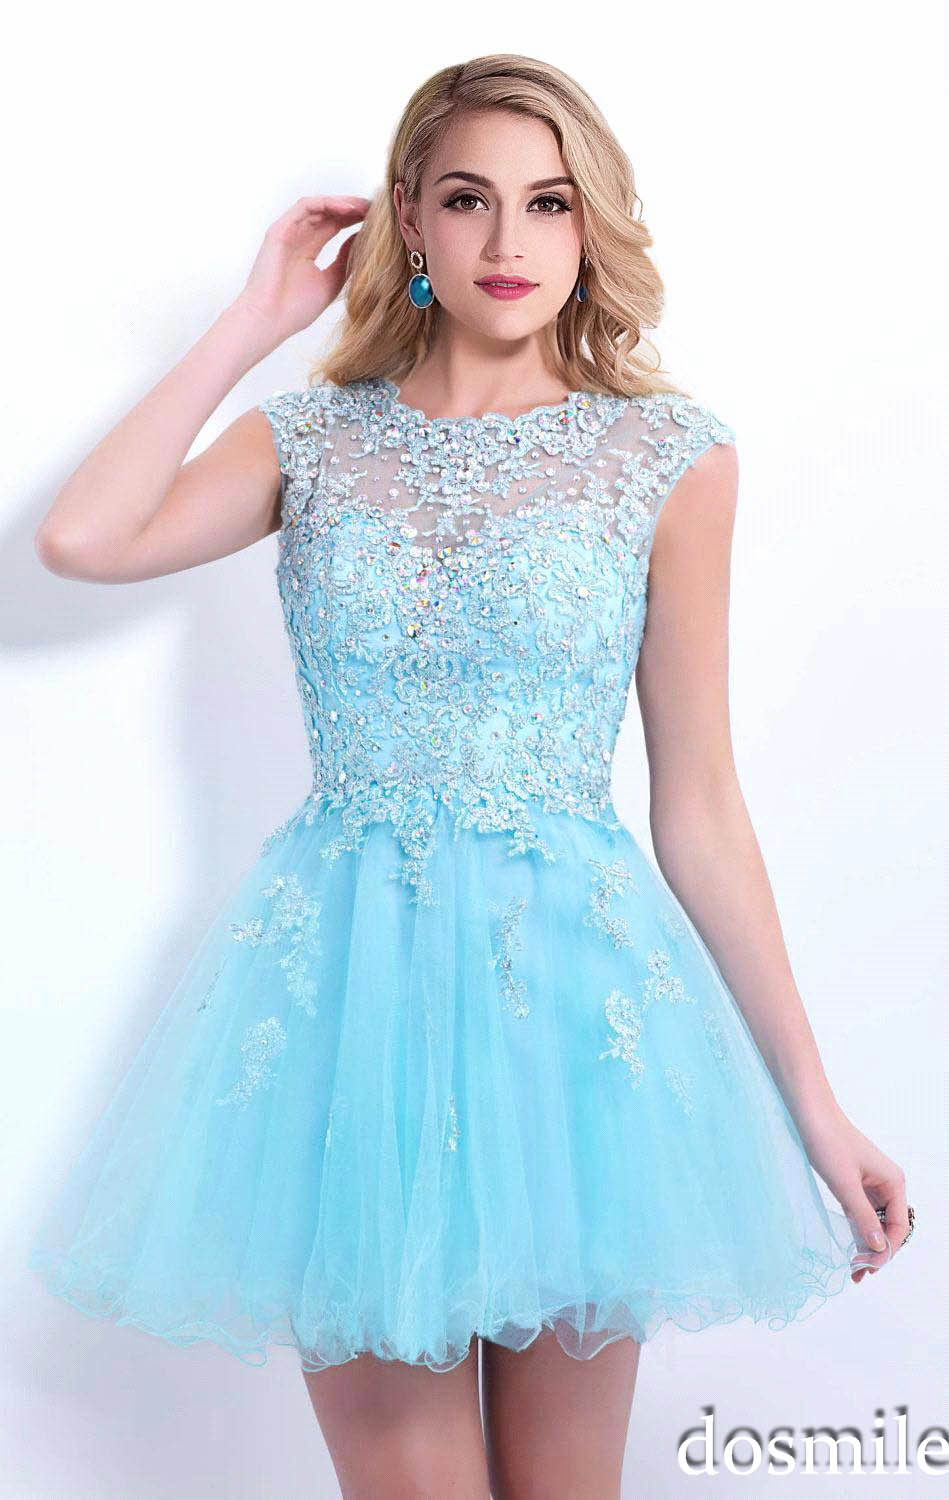 Compare Prices on Blue Semi Formal Dresses- Online Shopping/Buy ...